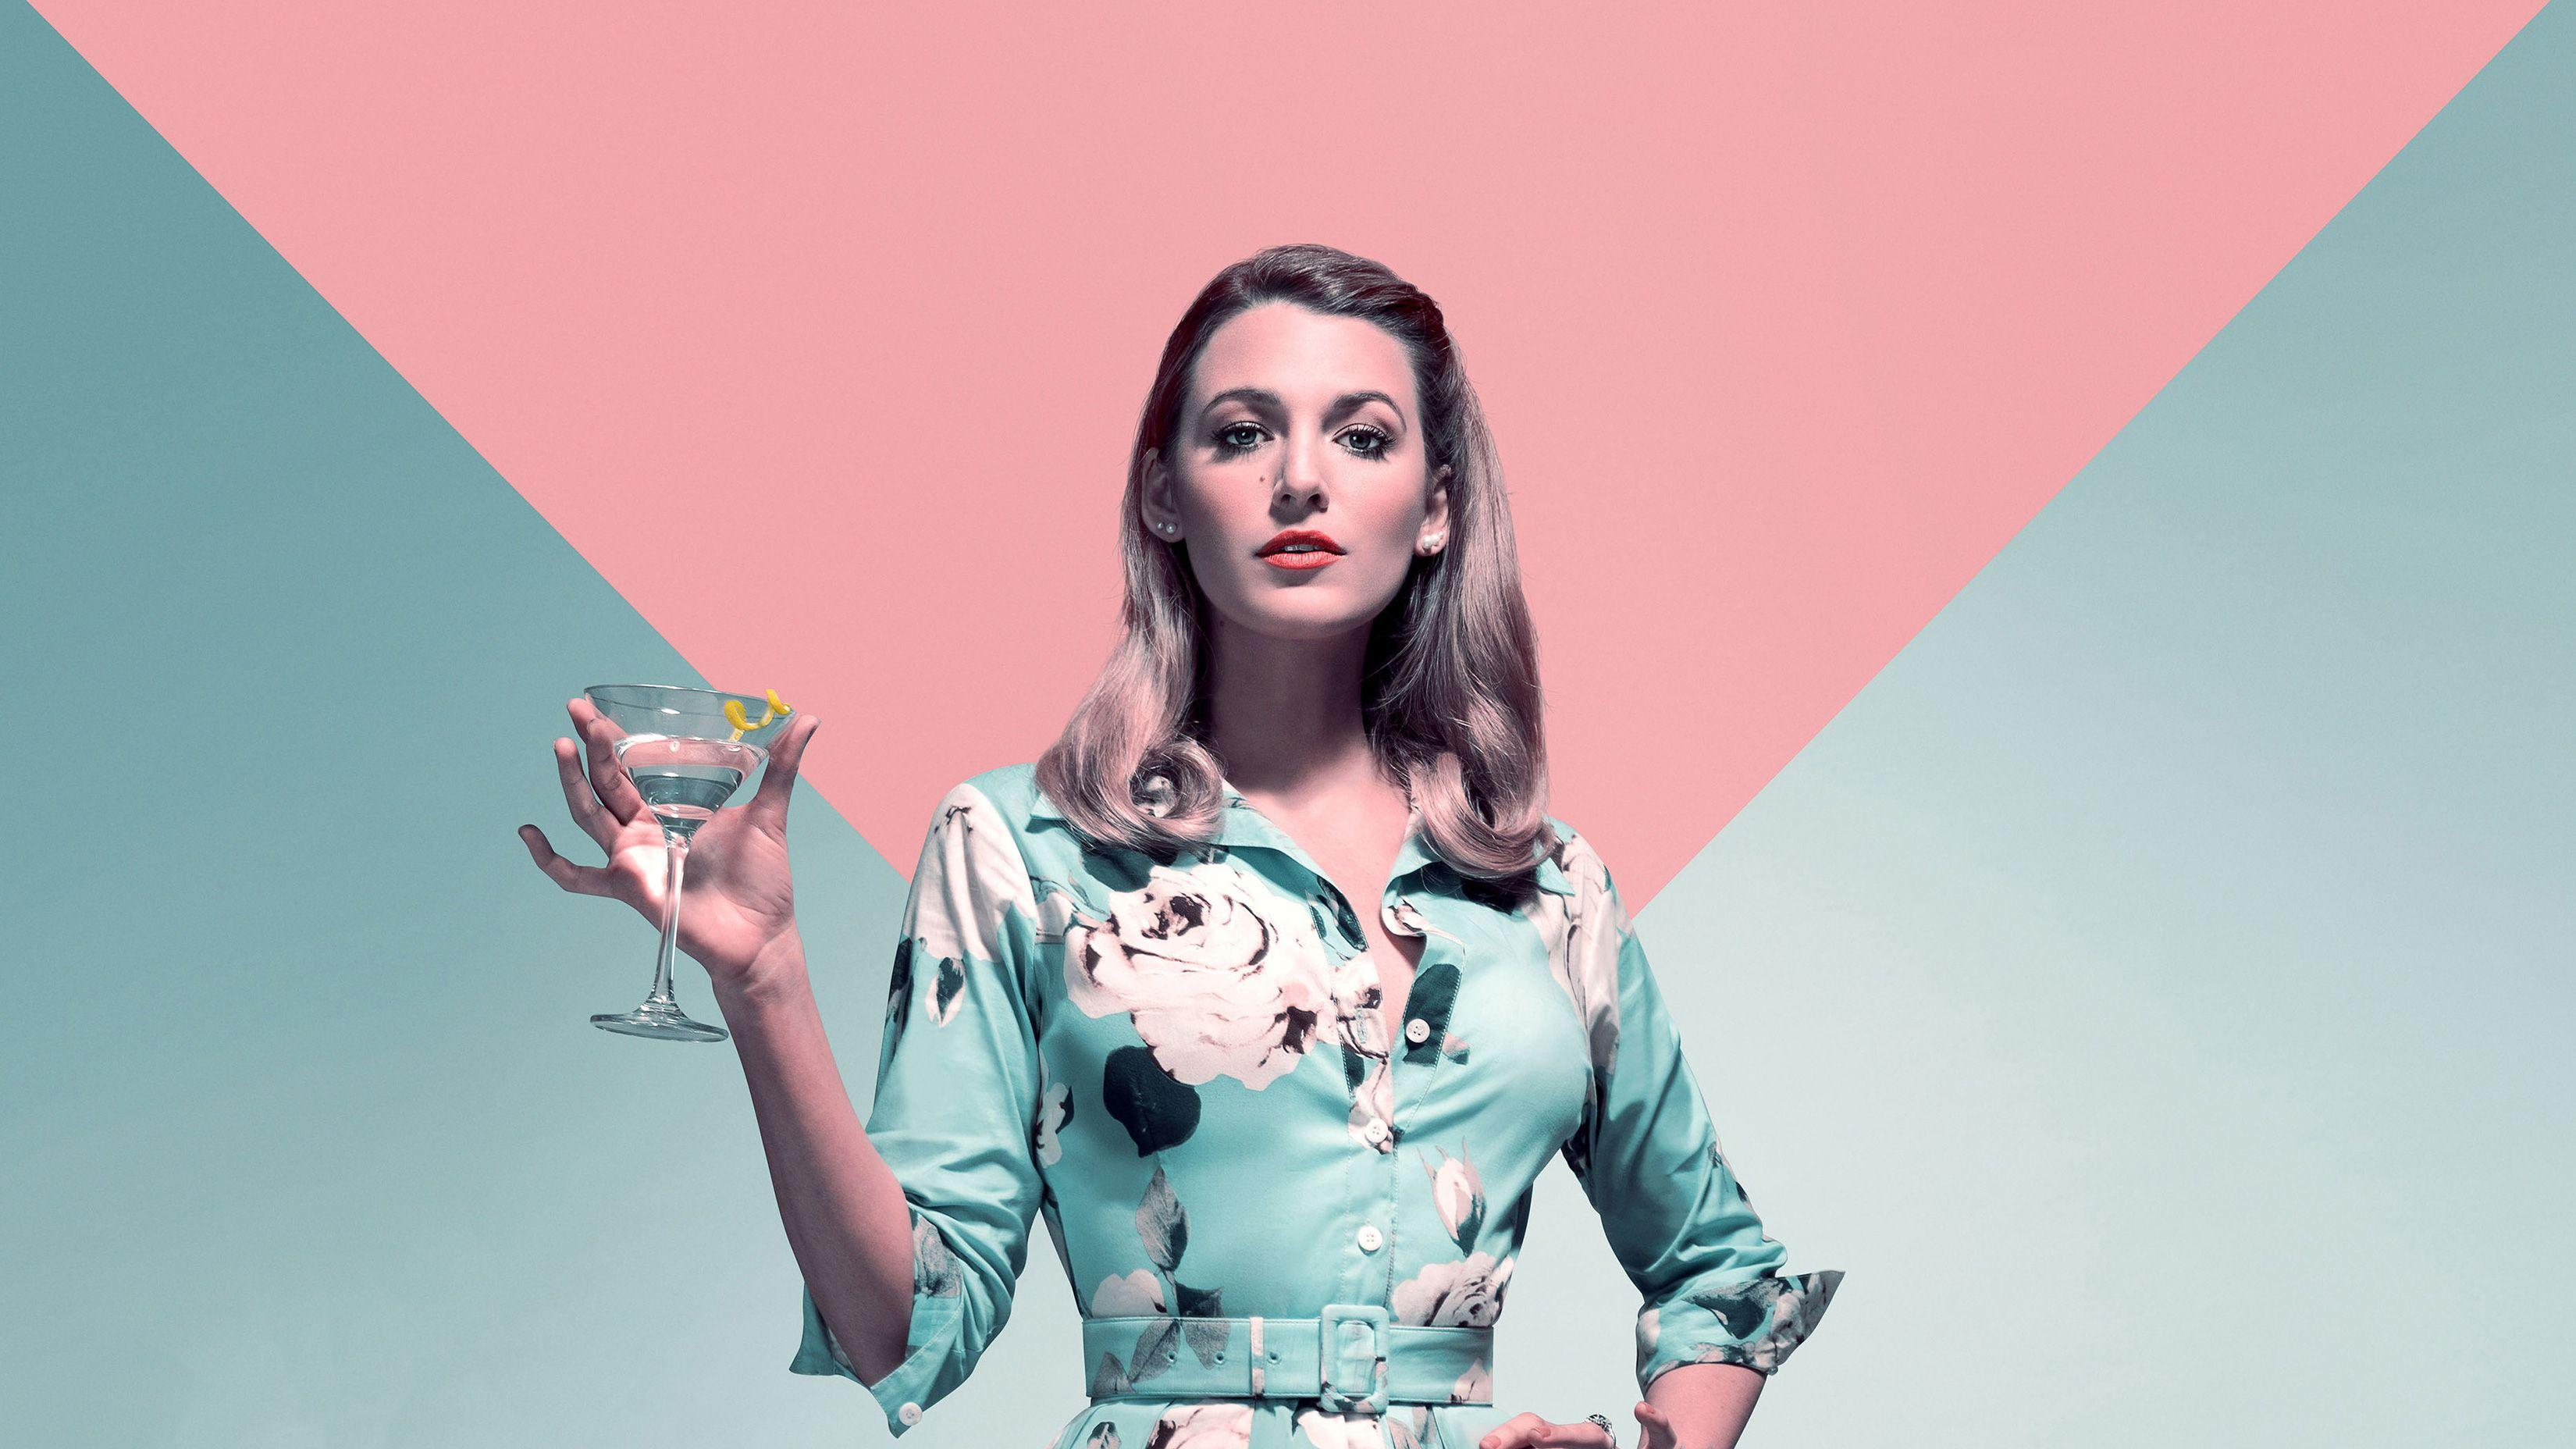 A Simple Favor Wallpapers Wallpaper Cave